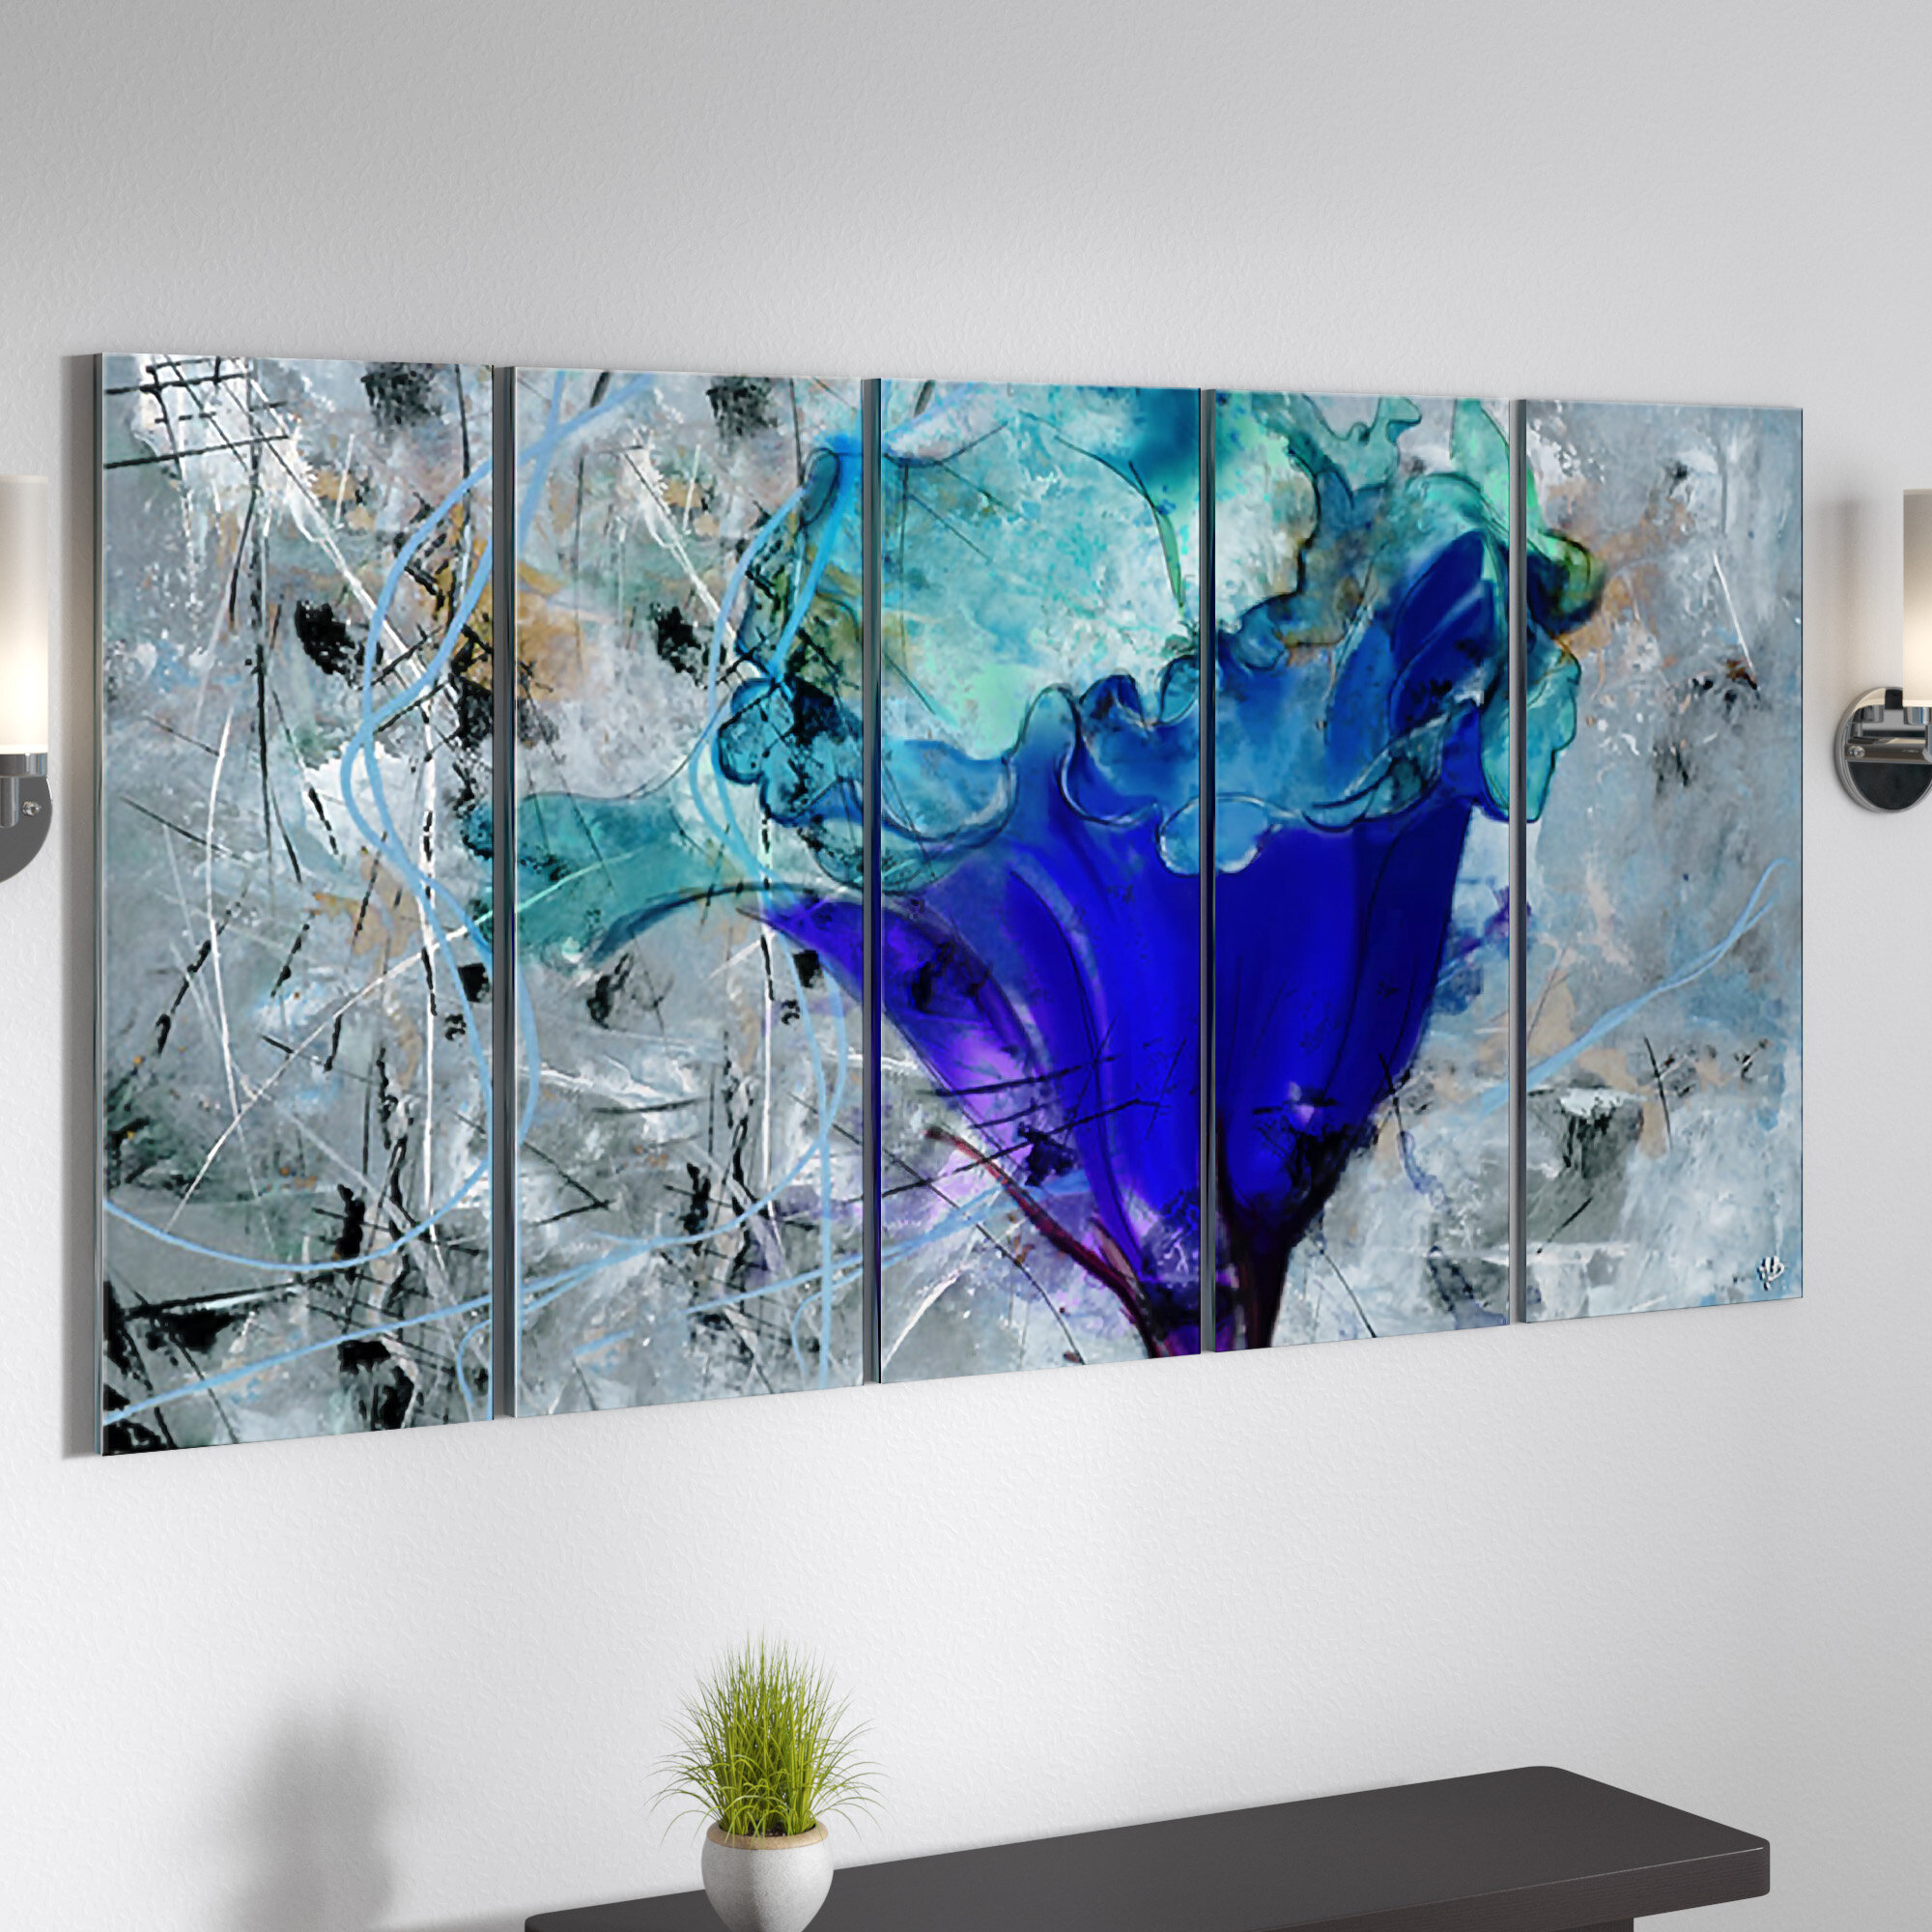 Multi Panel Wall Art You Ll Love In 2021 Visualhunt